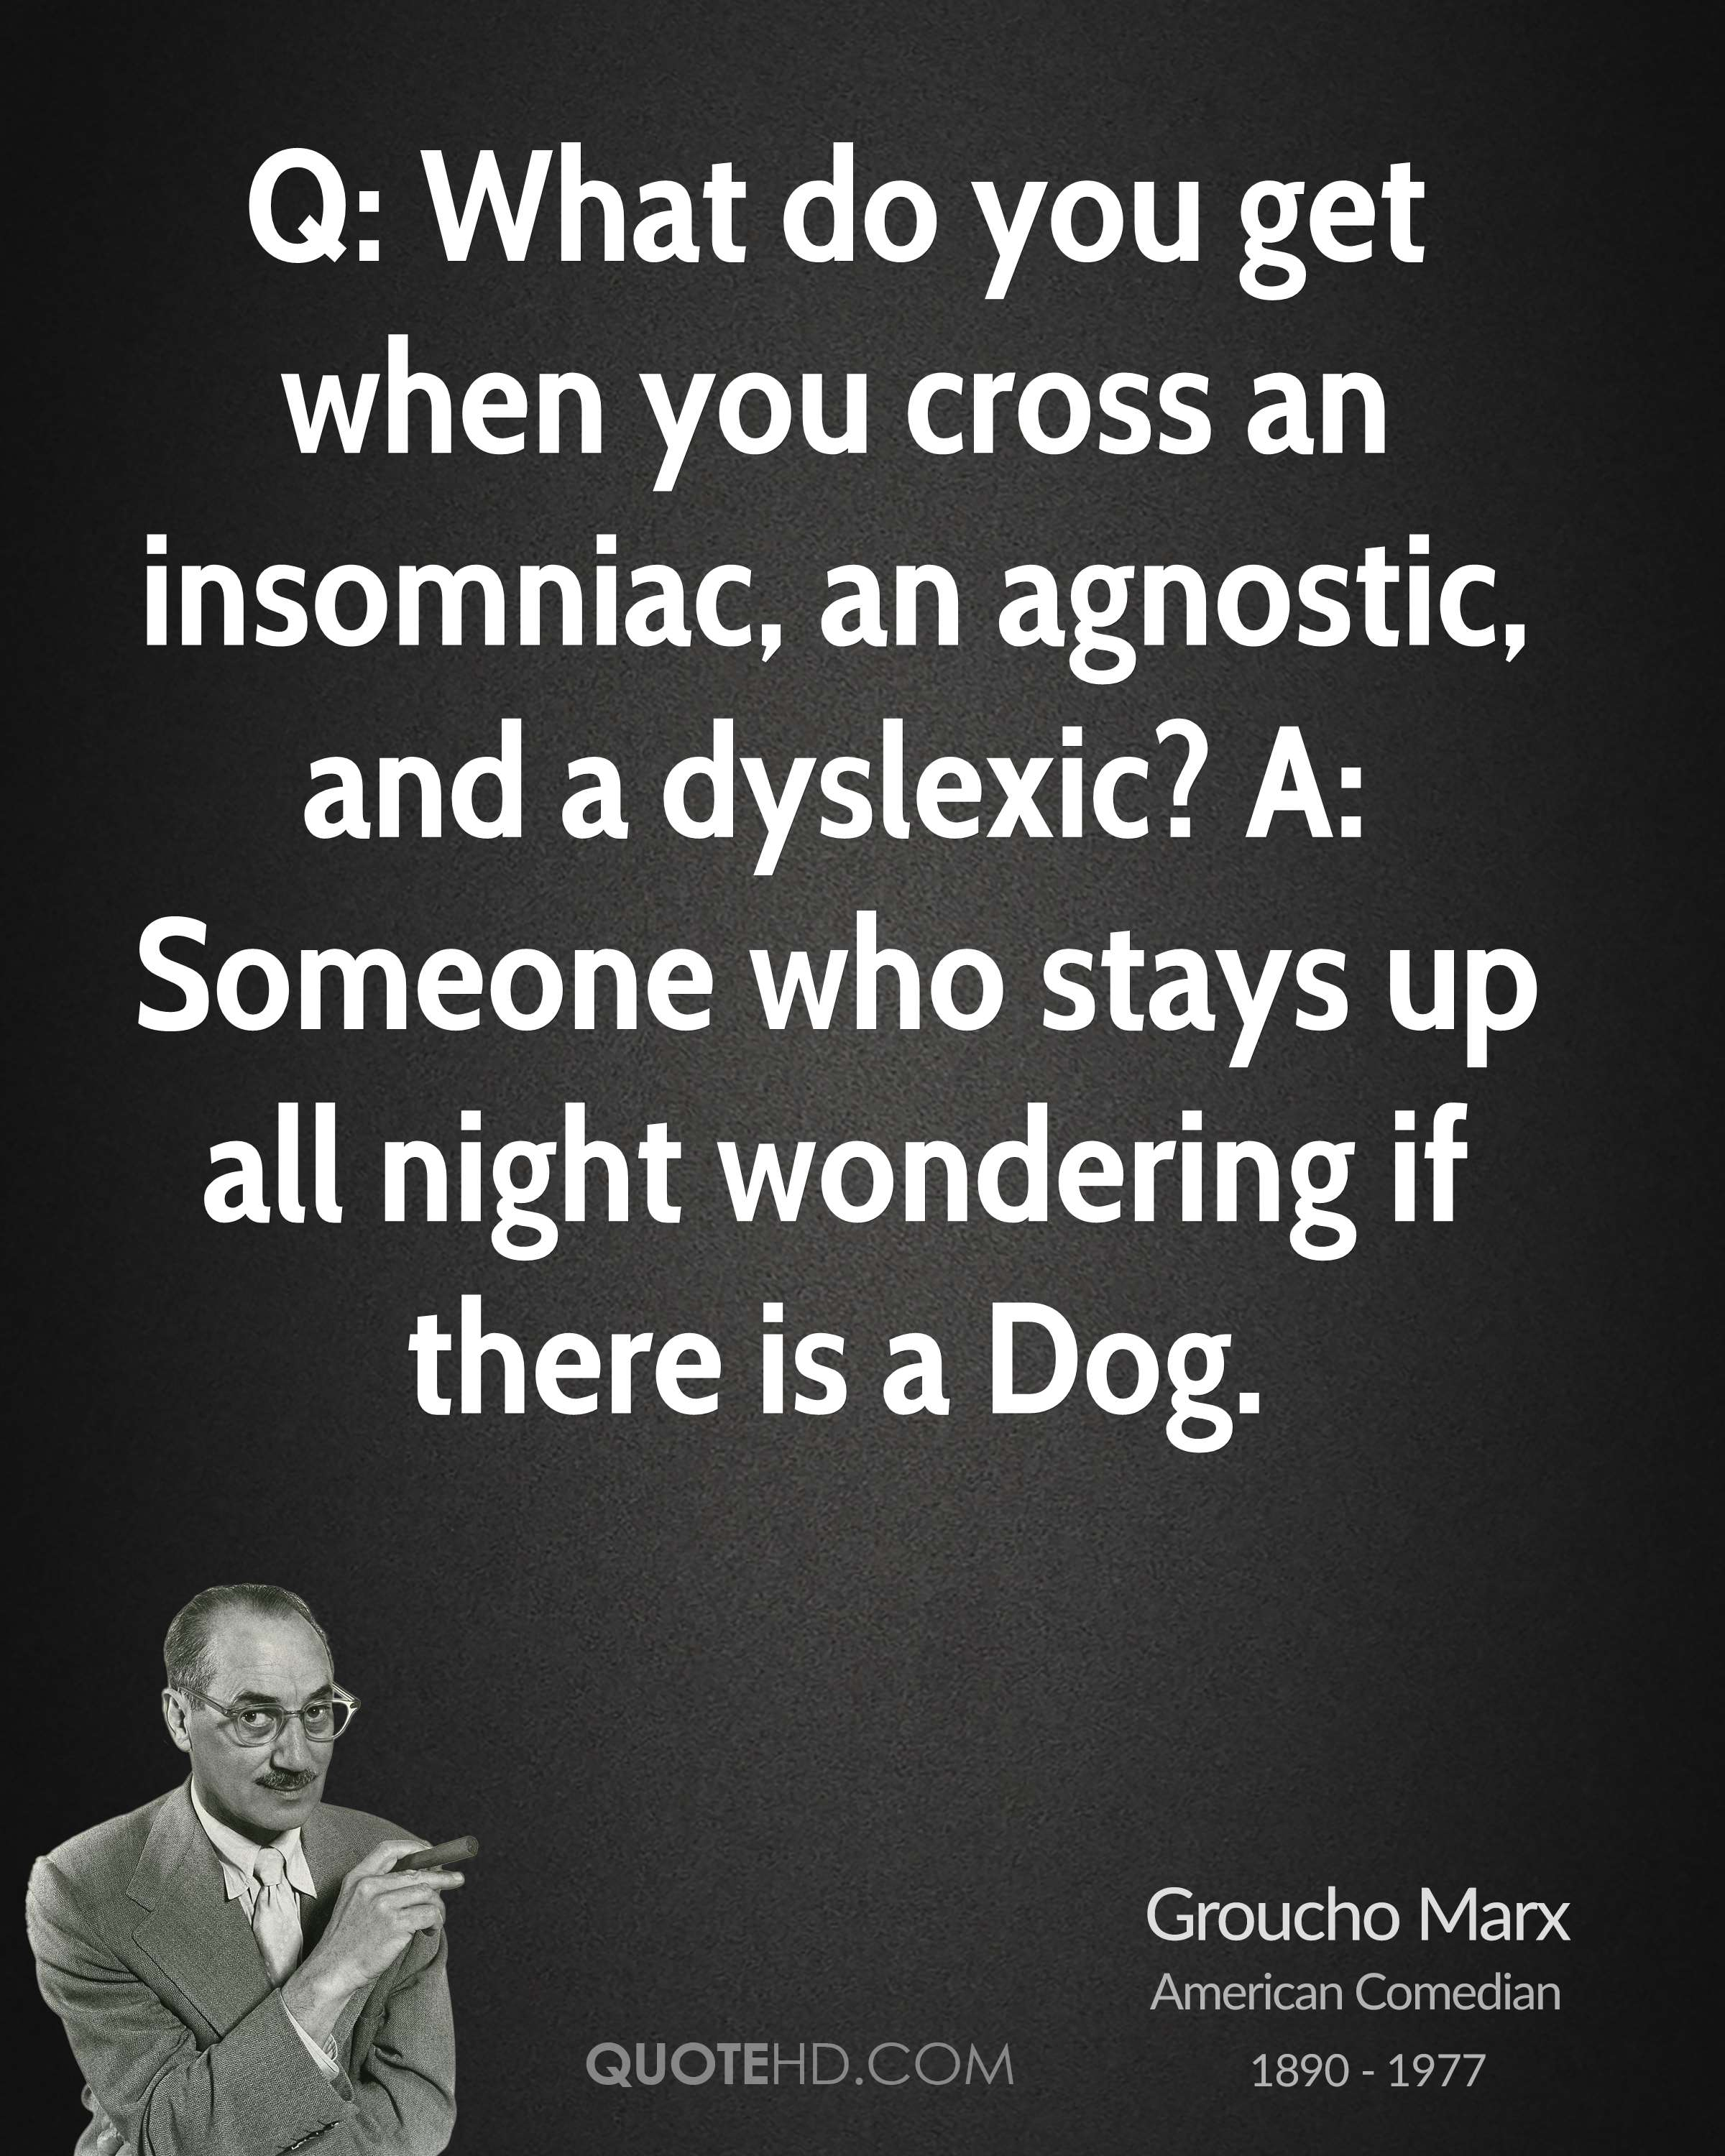 Q: What do you get when you cross an insomniac, an agnostic, and a dyslexic? A: Someone who stays up all night wondering if there is a Dog.